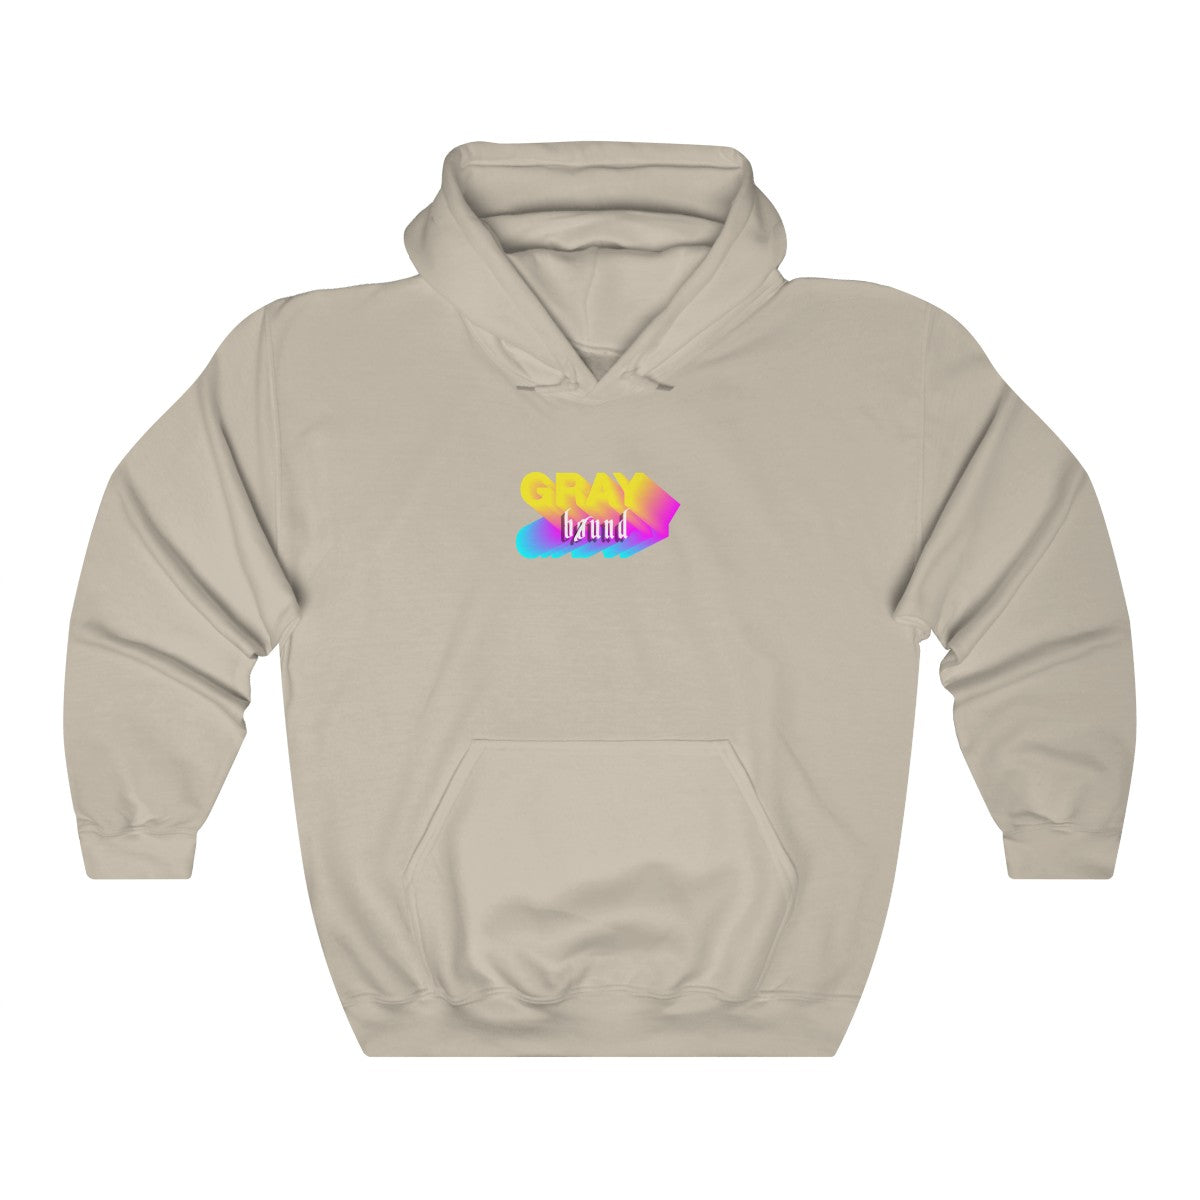 Graphic Logo Hoodie - Graybøund Apparel and Acessories